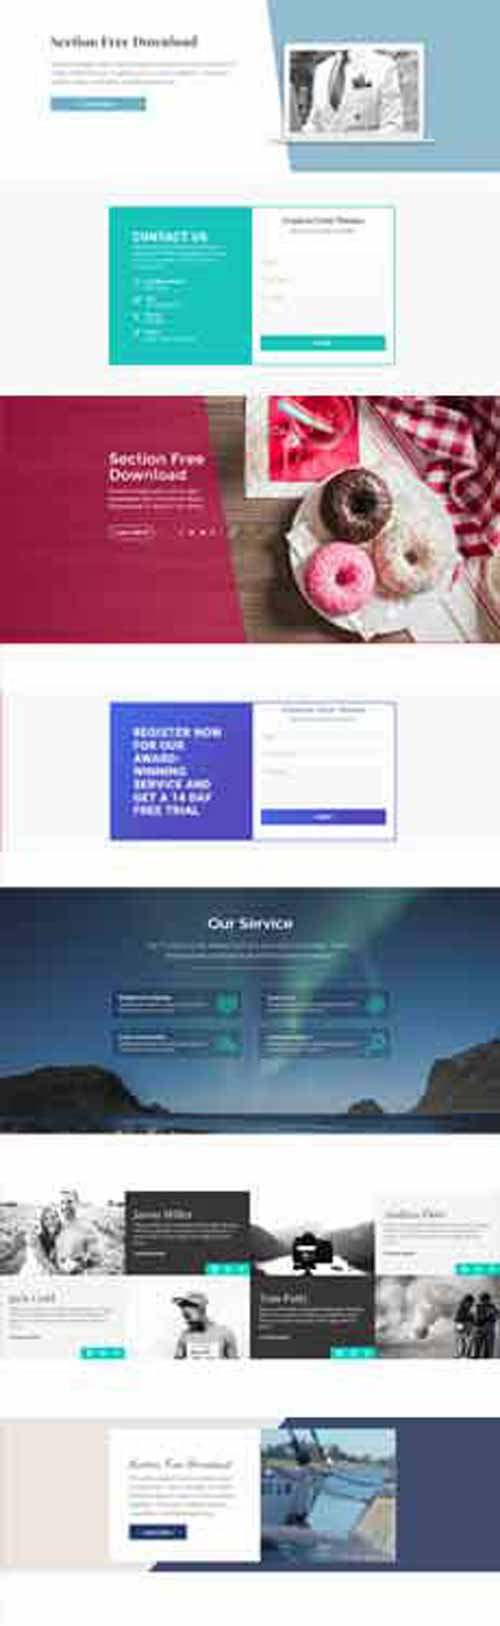 split screen layout for Divi